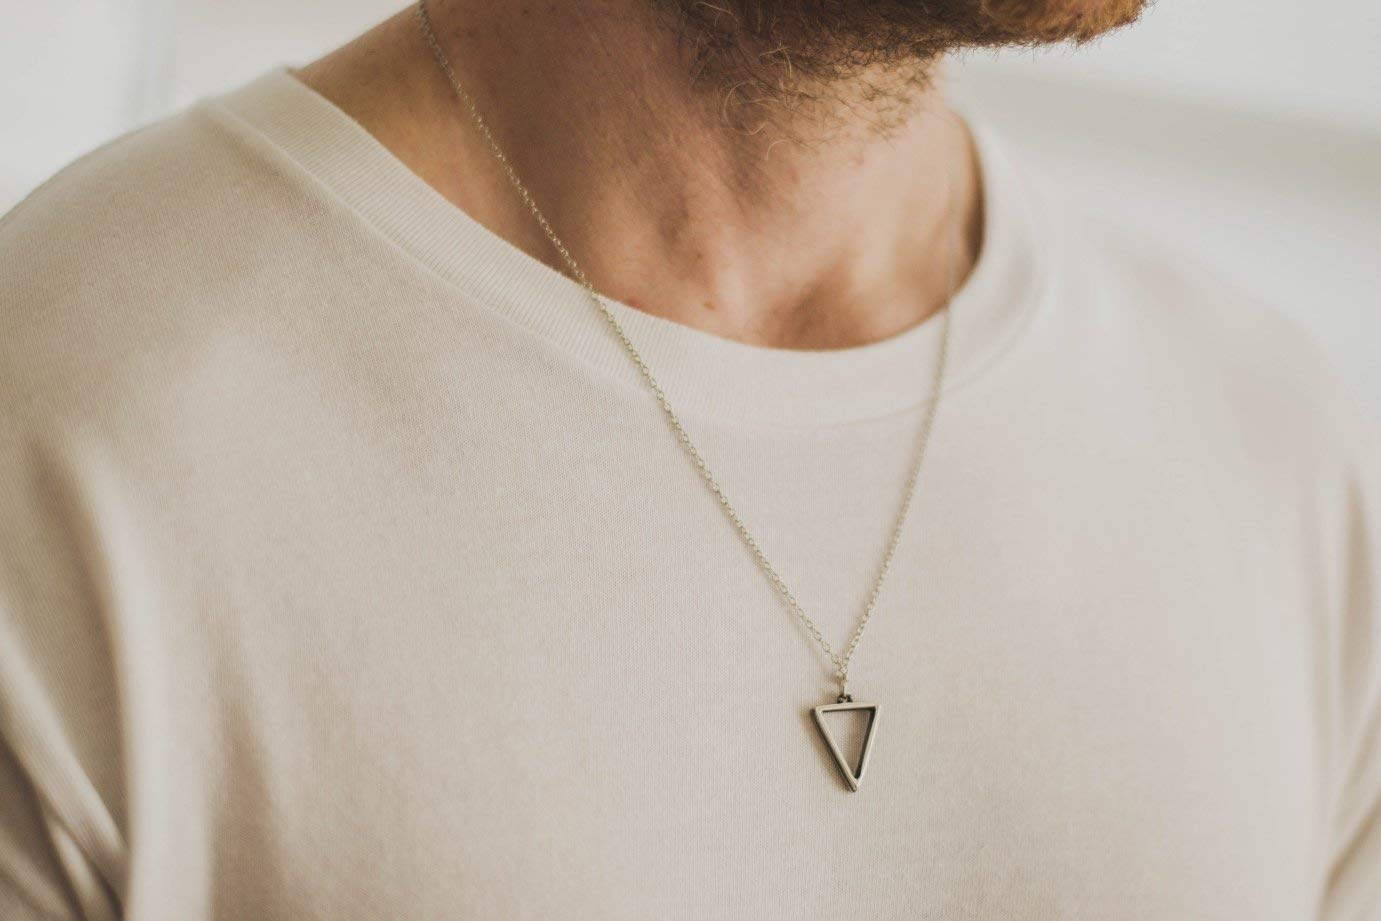 Amazon Com Triangle Necklace For Men Groomsmen Gift Men S Necklace With A Silver Triangle Pendant Silver Chain Gift For Him Geometric Necklace Handmade